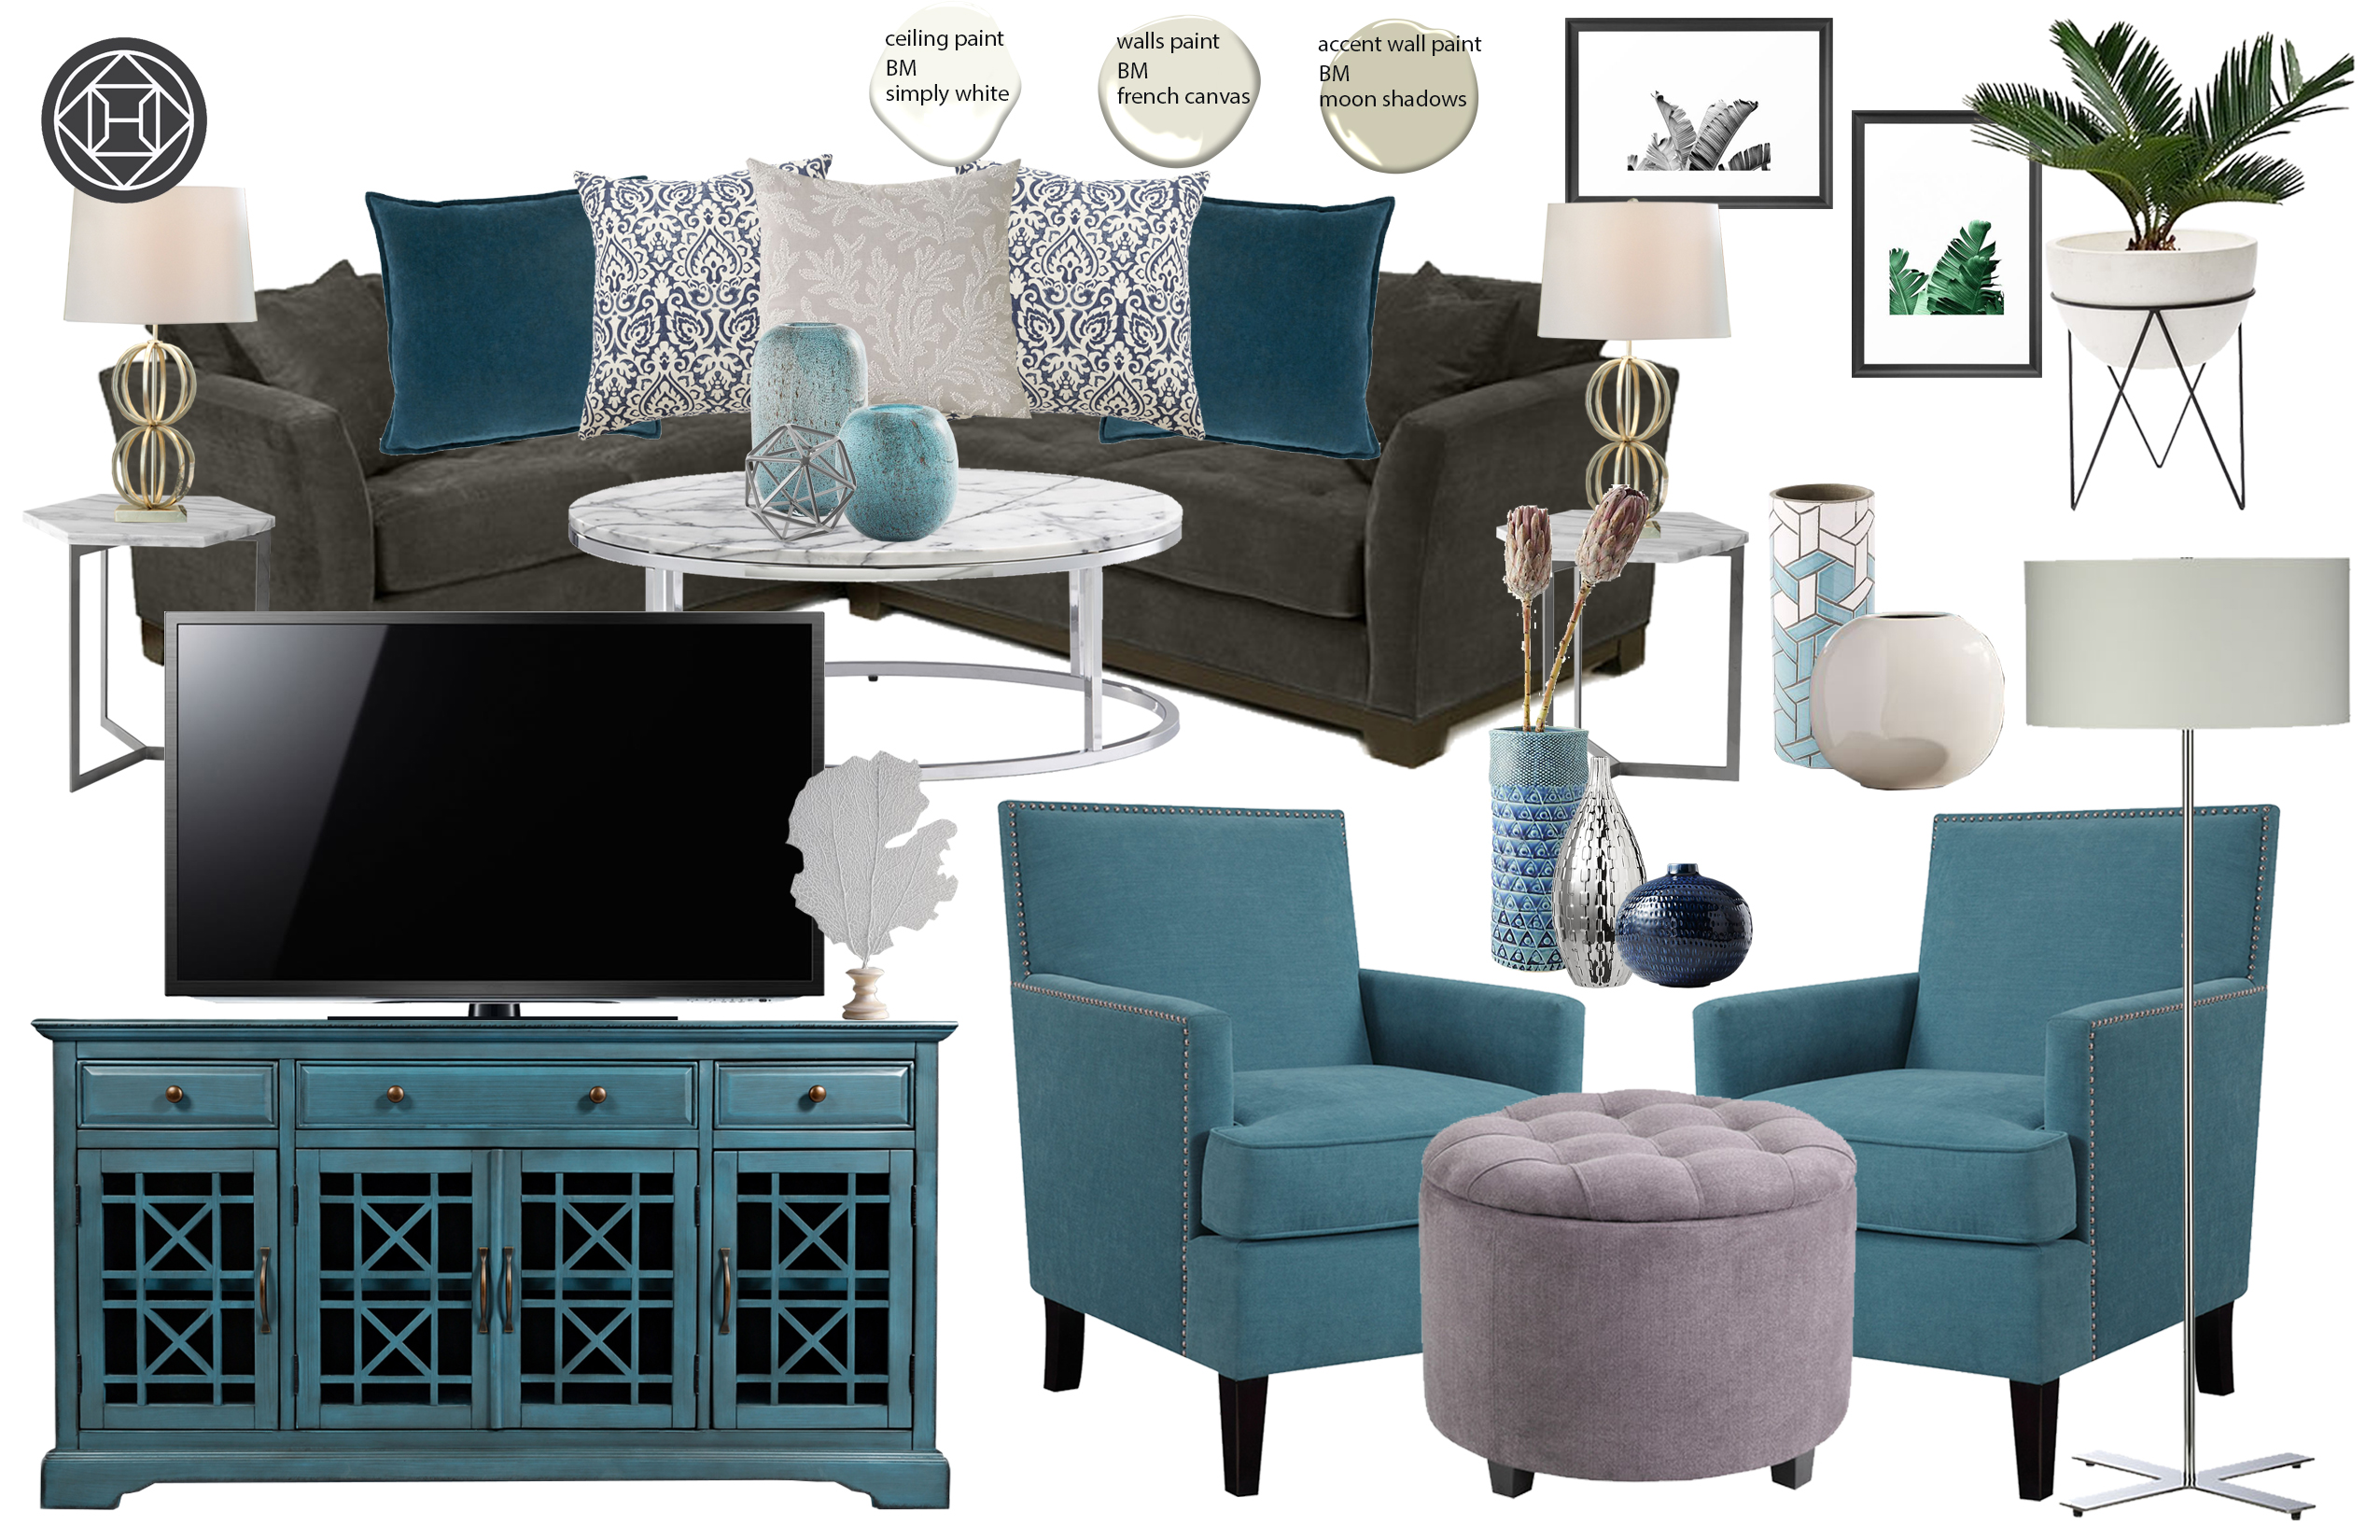 Exceptionnel Contemporary, Modern, Classic Living Room Design By Havenly ...